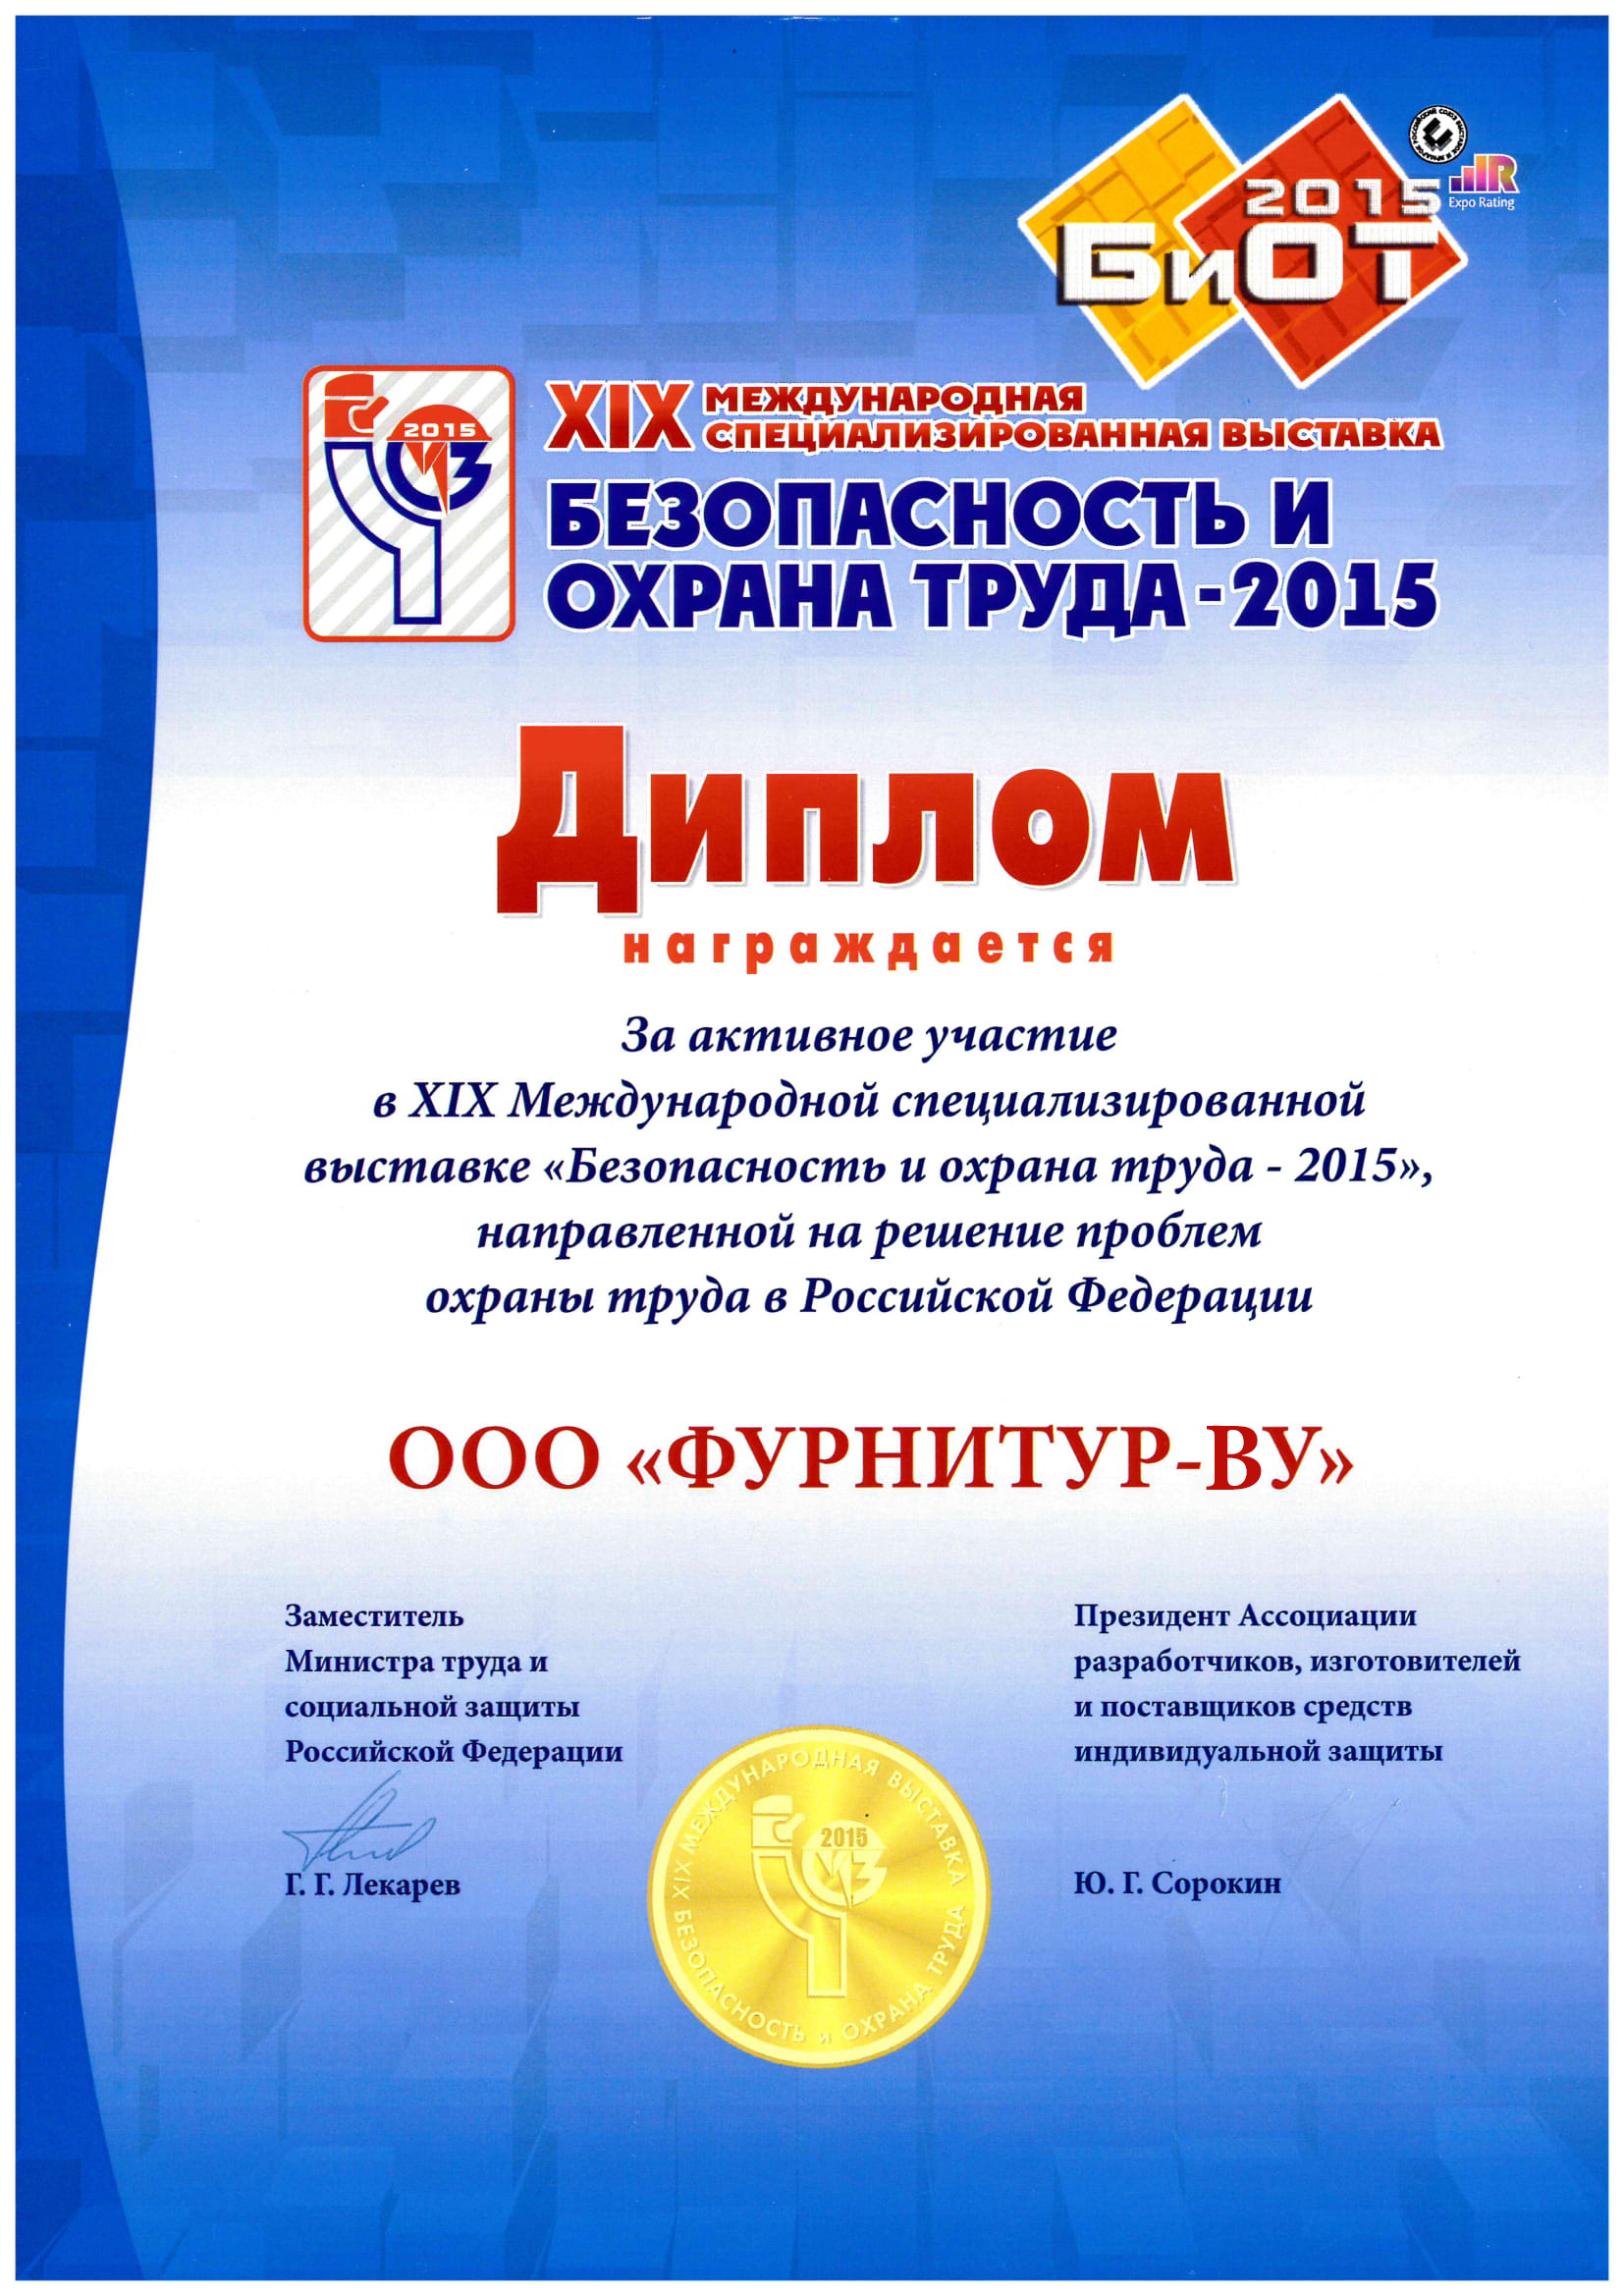 Safety and health 2015 (Moscow)